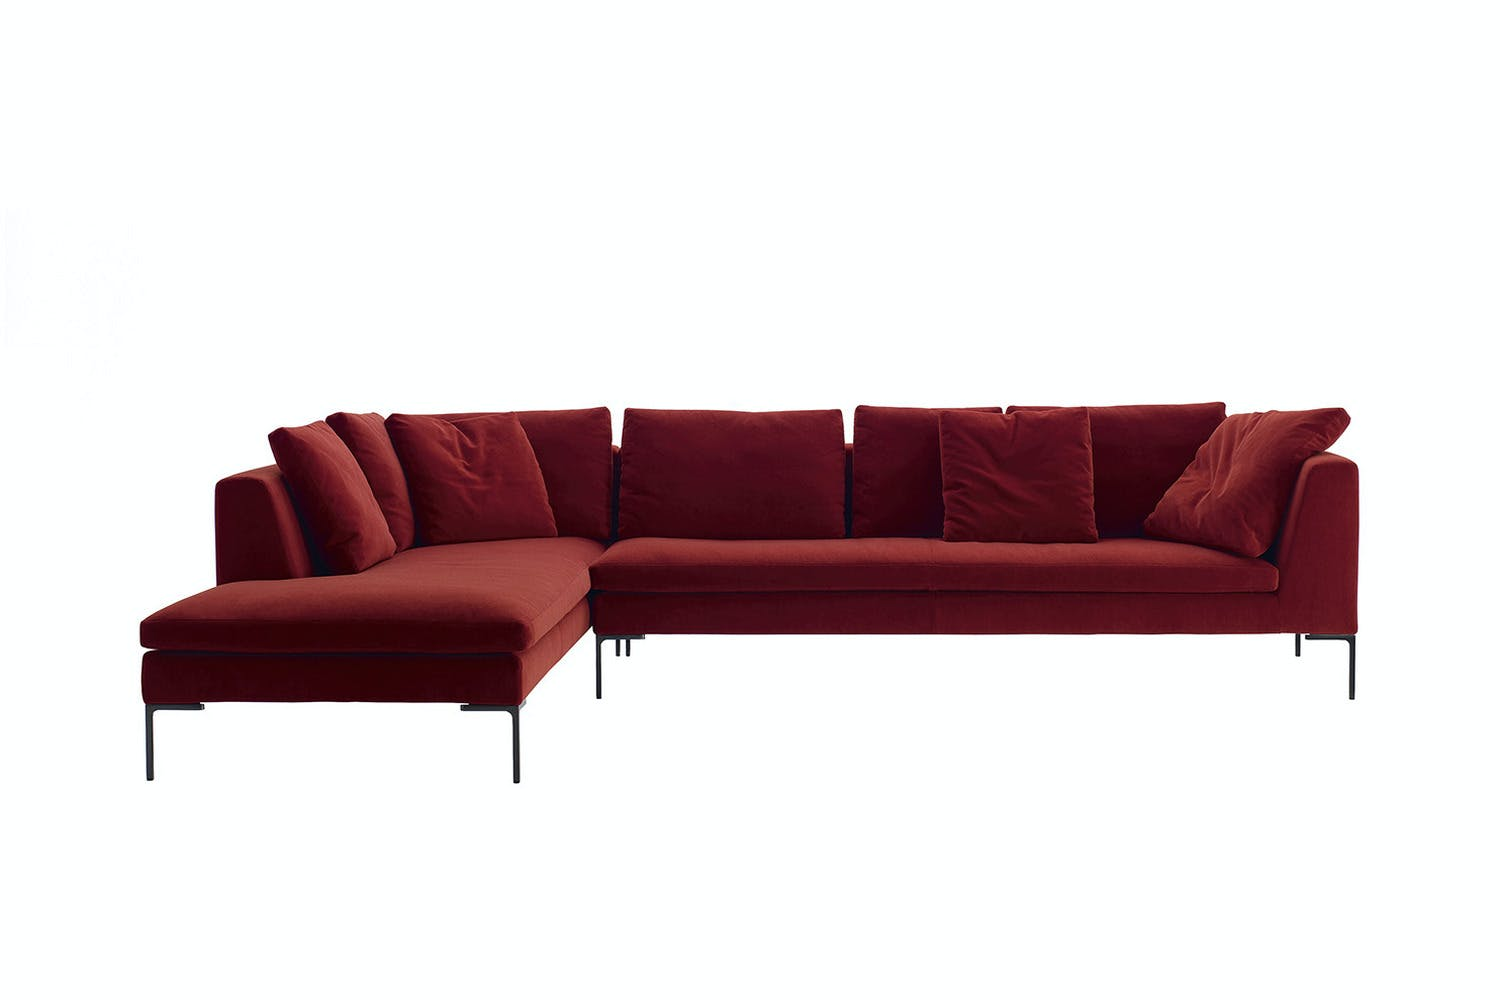 Charles Sofa With Left Chaise Fabric By Antonio Citterio For Bb